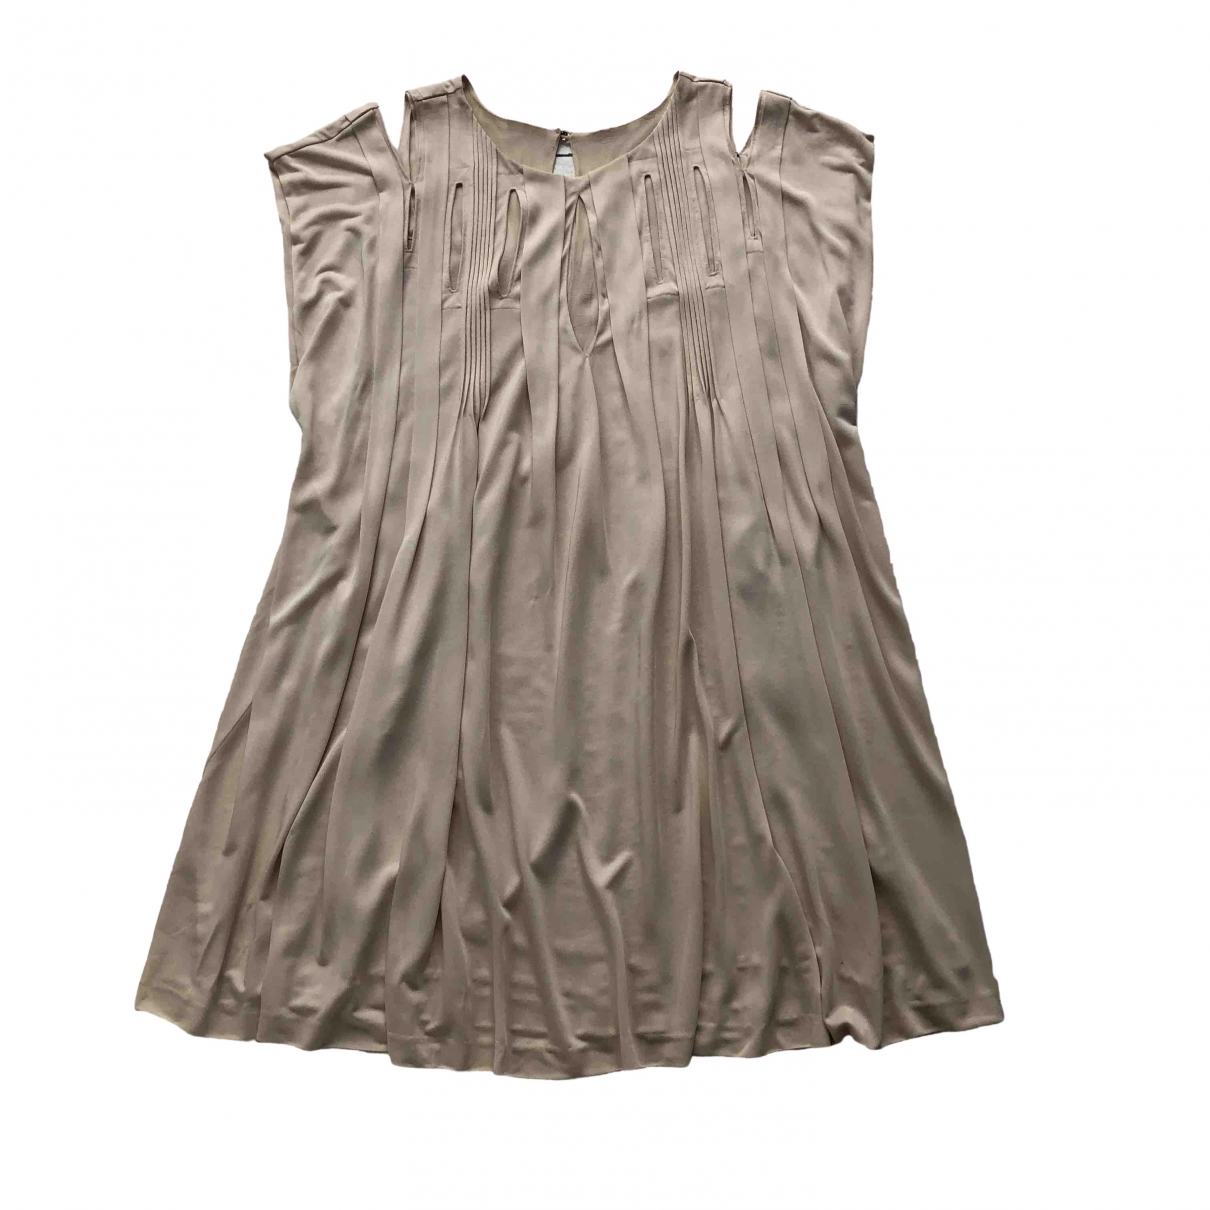 Chloé \N Ecru dress for Women M International